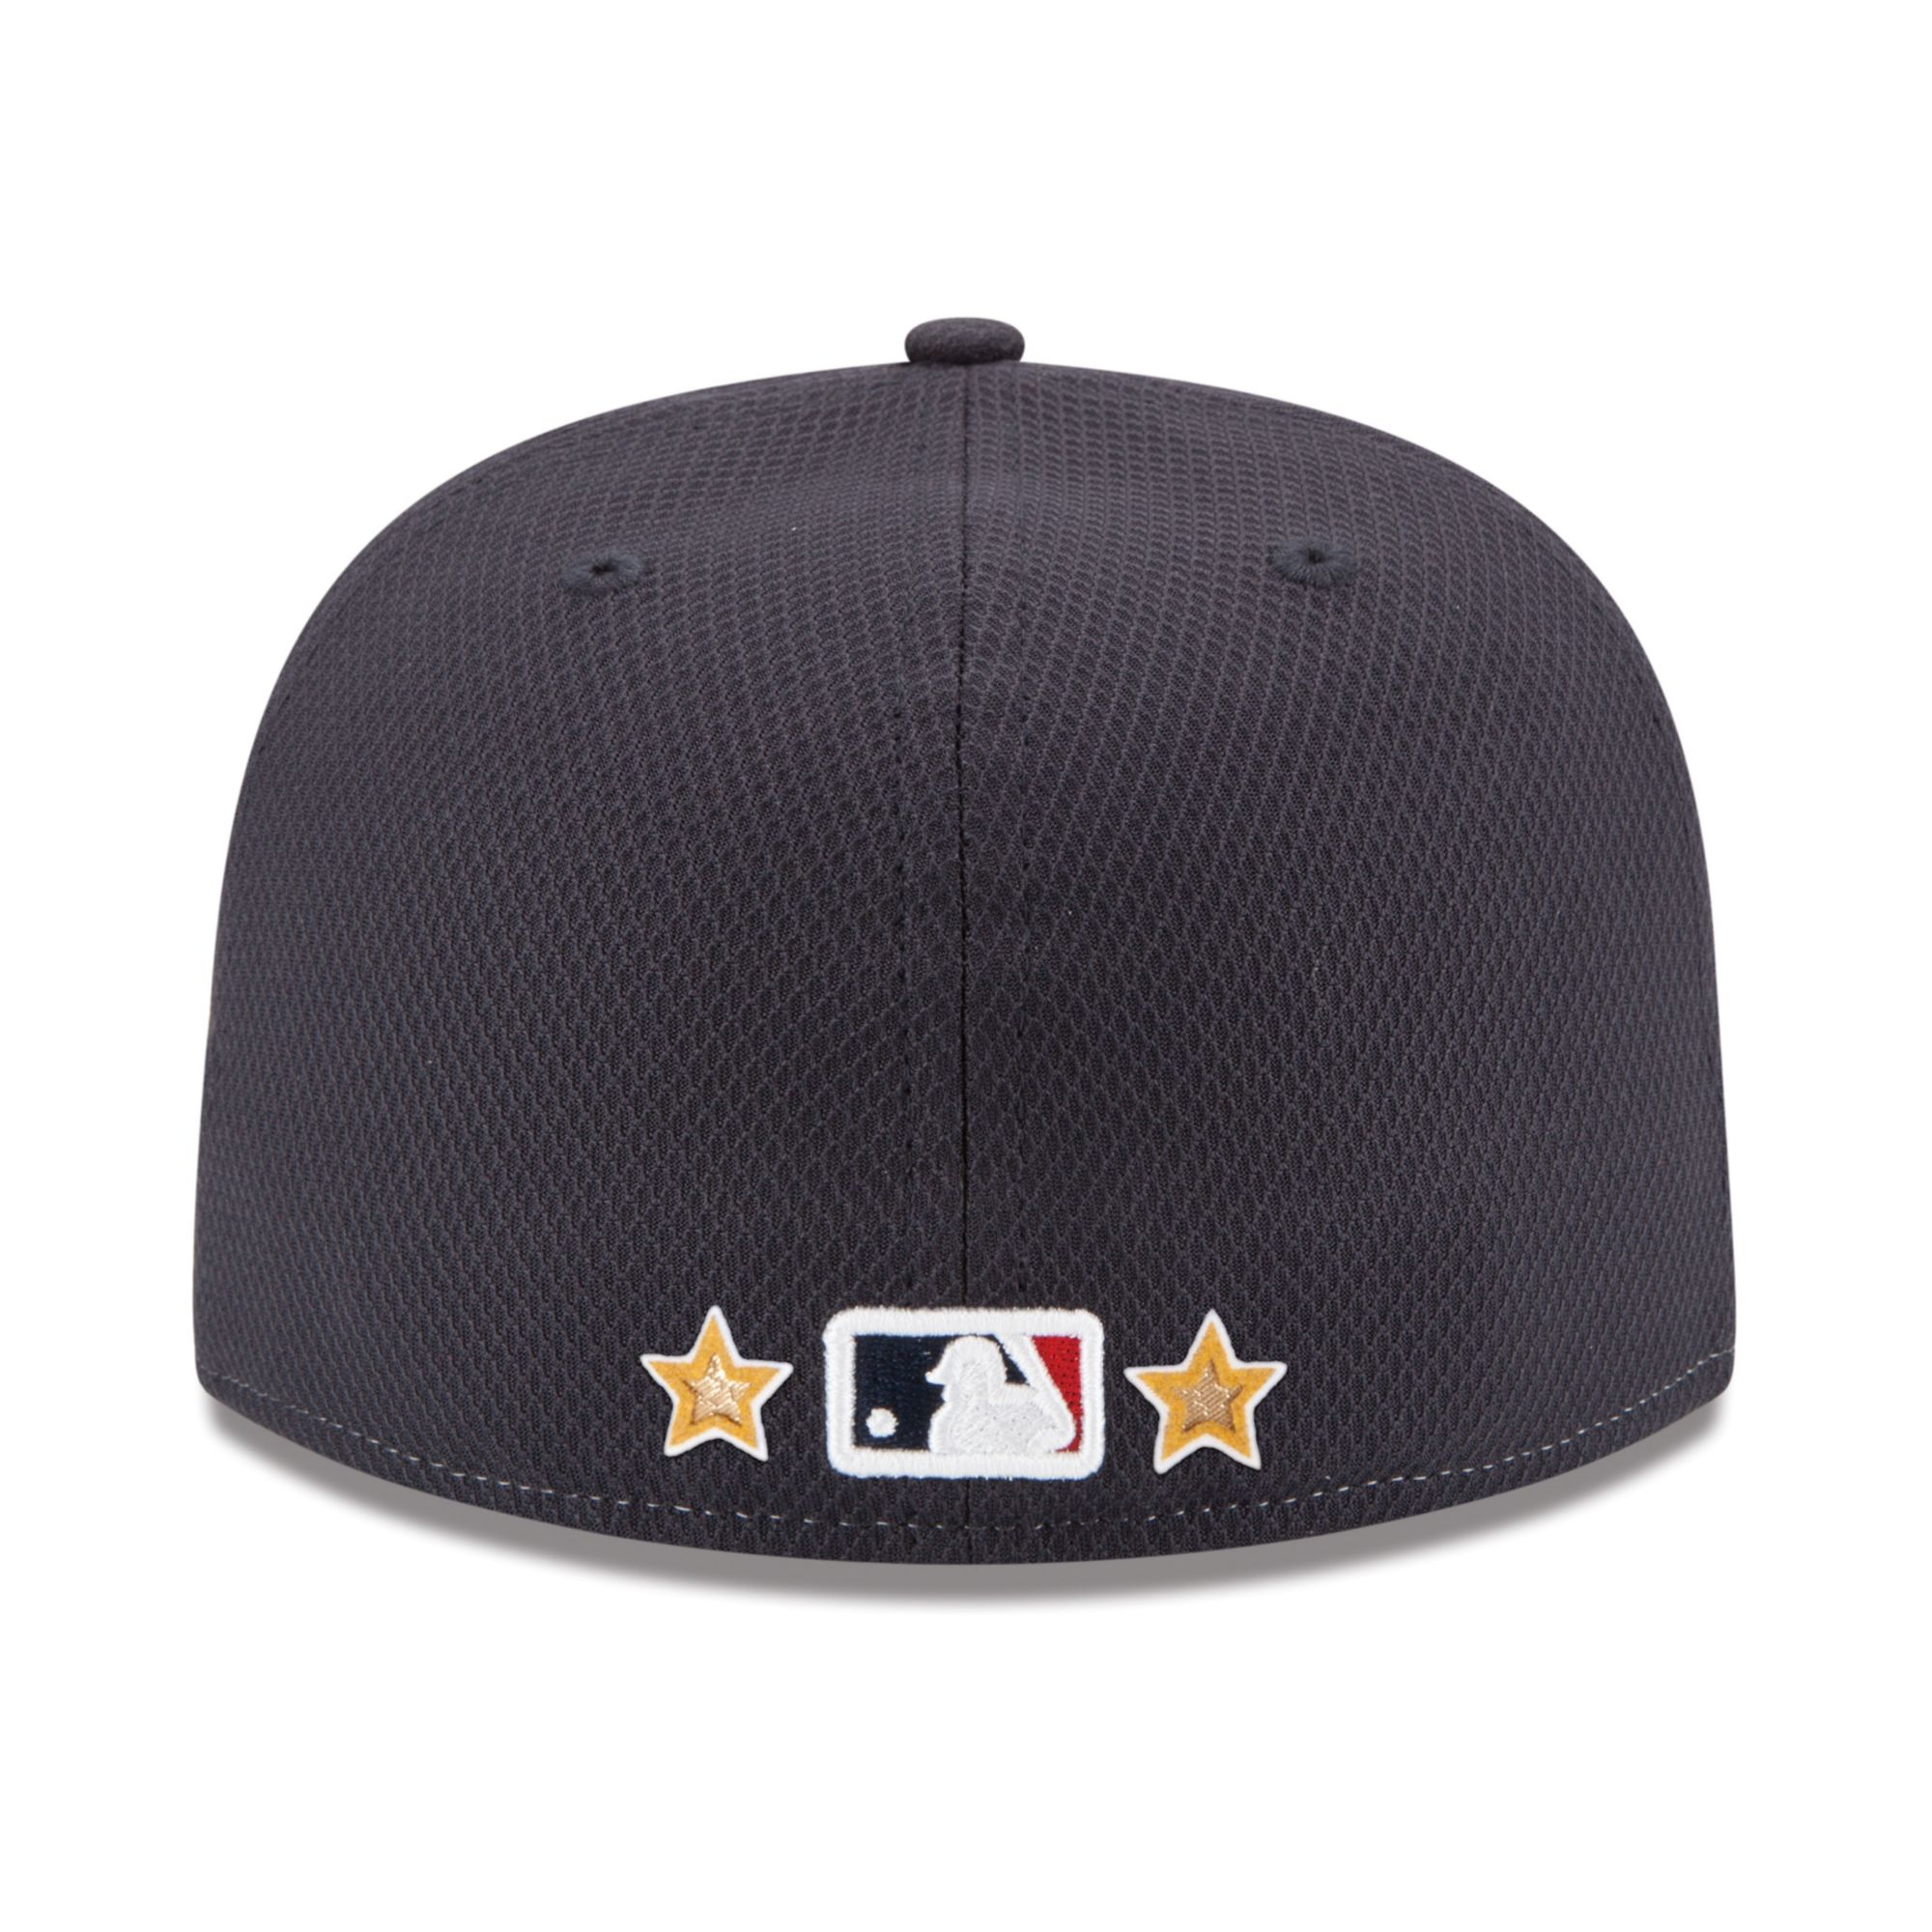 cheap for discount 5b70a 401d3 usa chicago white sox new era 59fifty mlb 2015 all star game fitted cap  size 7 3 8747f 7be45  wholesale lyst ktz boston red sox all star game patch  59fifty ...